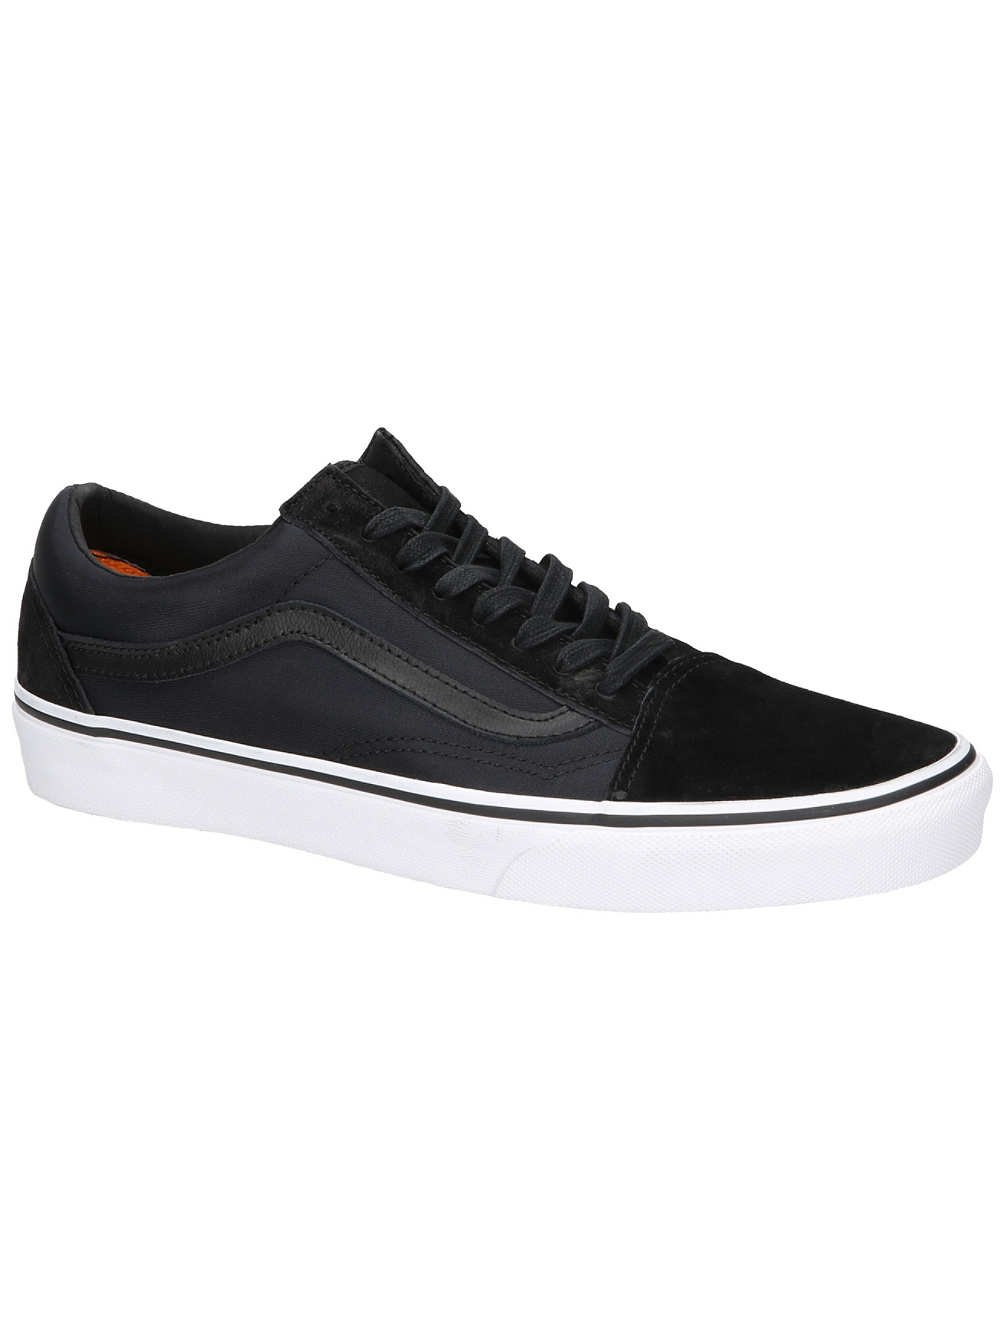 Vans Unisex Old Skool Classic Skate Shoes B01NBJJTY8 10 M US Women / 8.5 M US Men|Boom Boom Black/True White